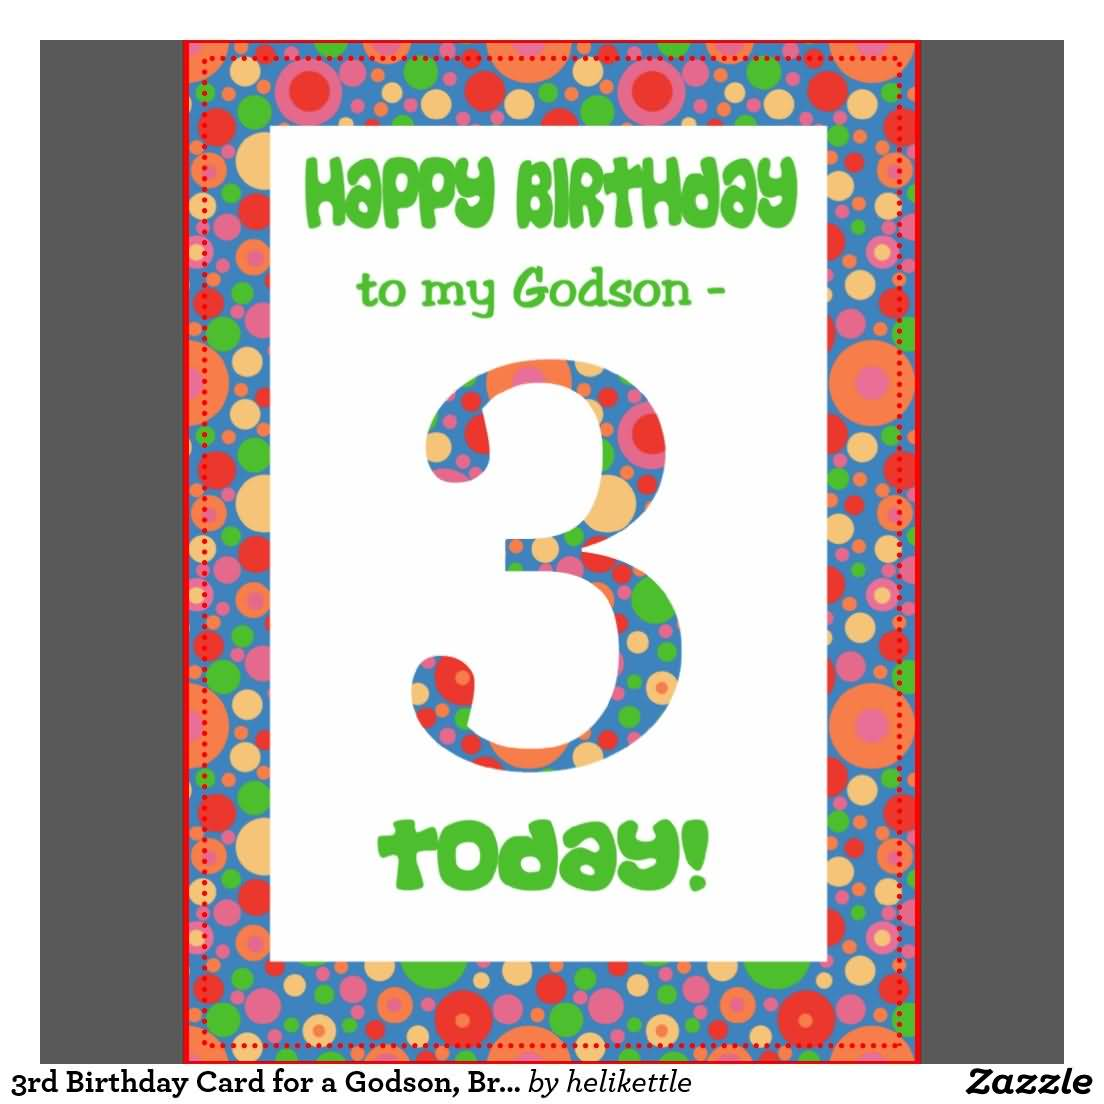 70 Amazing 3rd Birthday Wishes 2016 Birthday Wishes Zone Happy 3rd Birthday Wishes To My